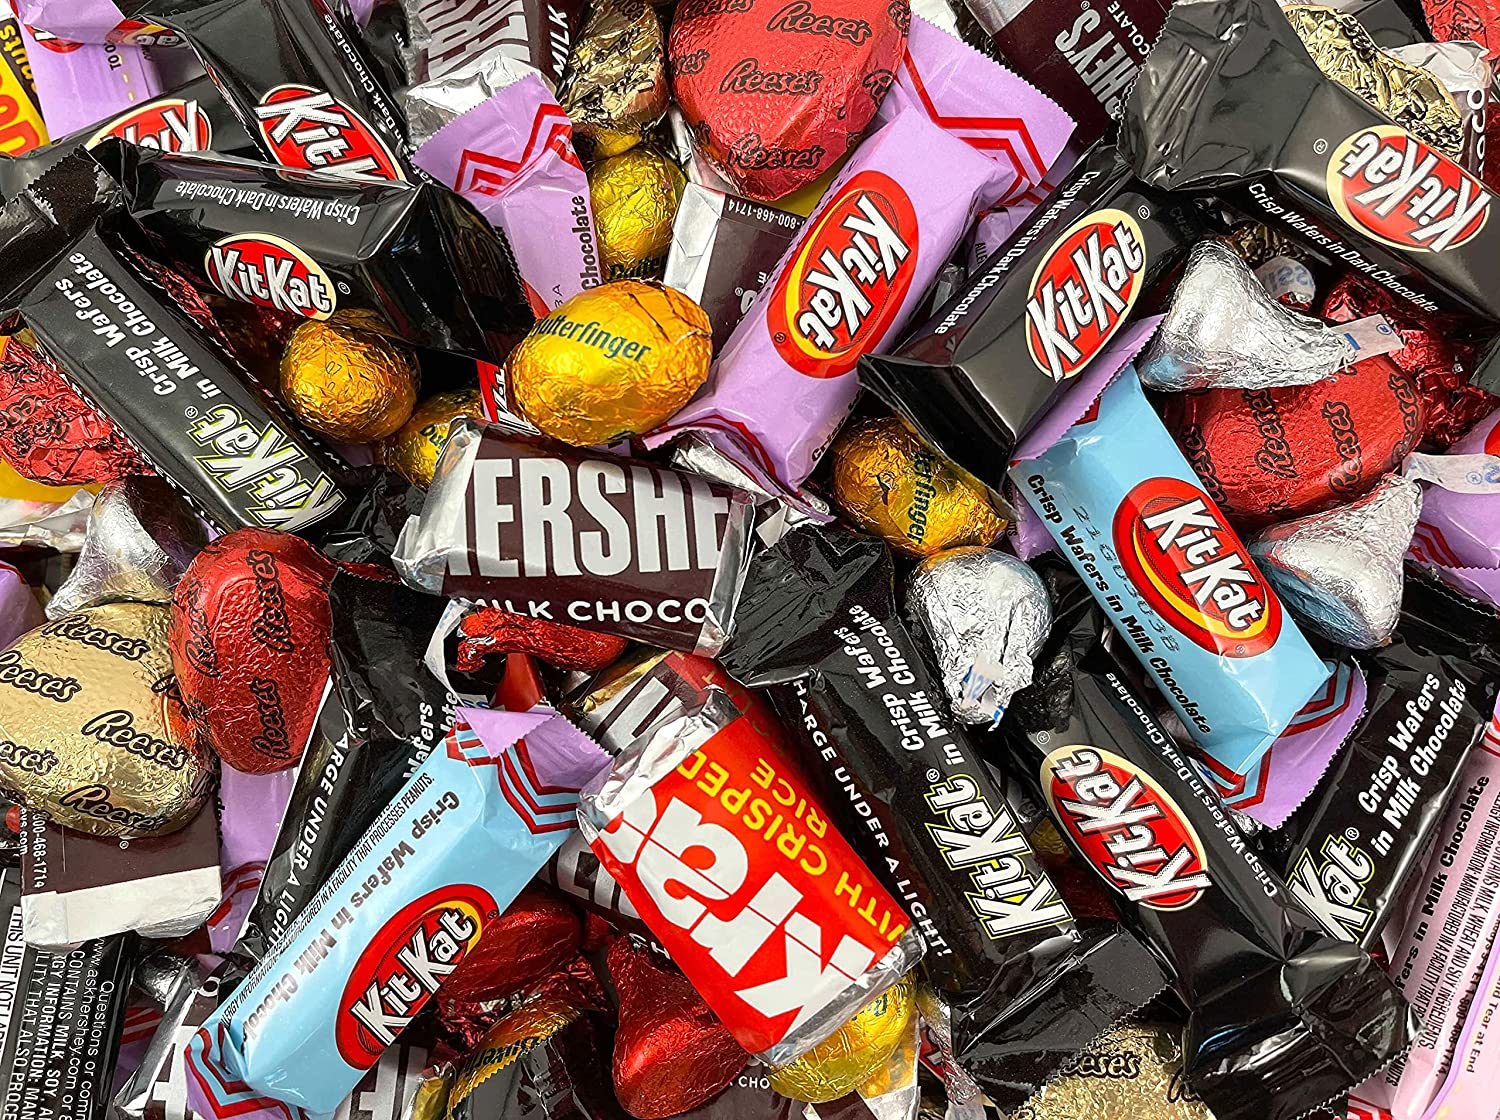 HERSHEY'S Candy Assortment HERSHEY'S REESE'S Hearts, KISSES, HERSHEY'S Miniatures, 3 Pound Bag